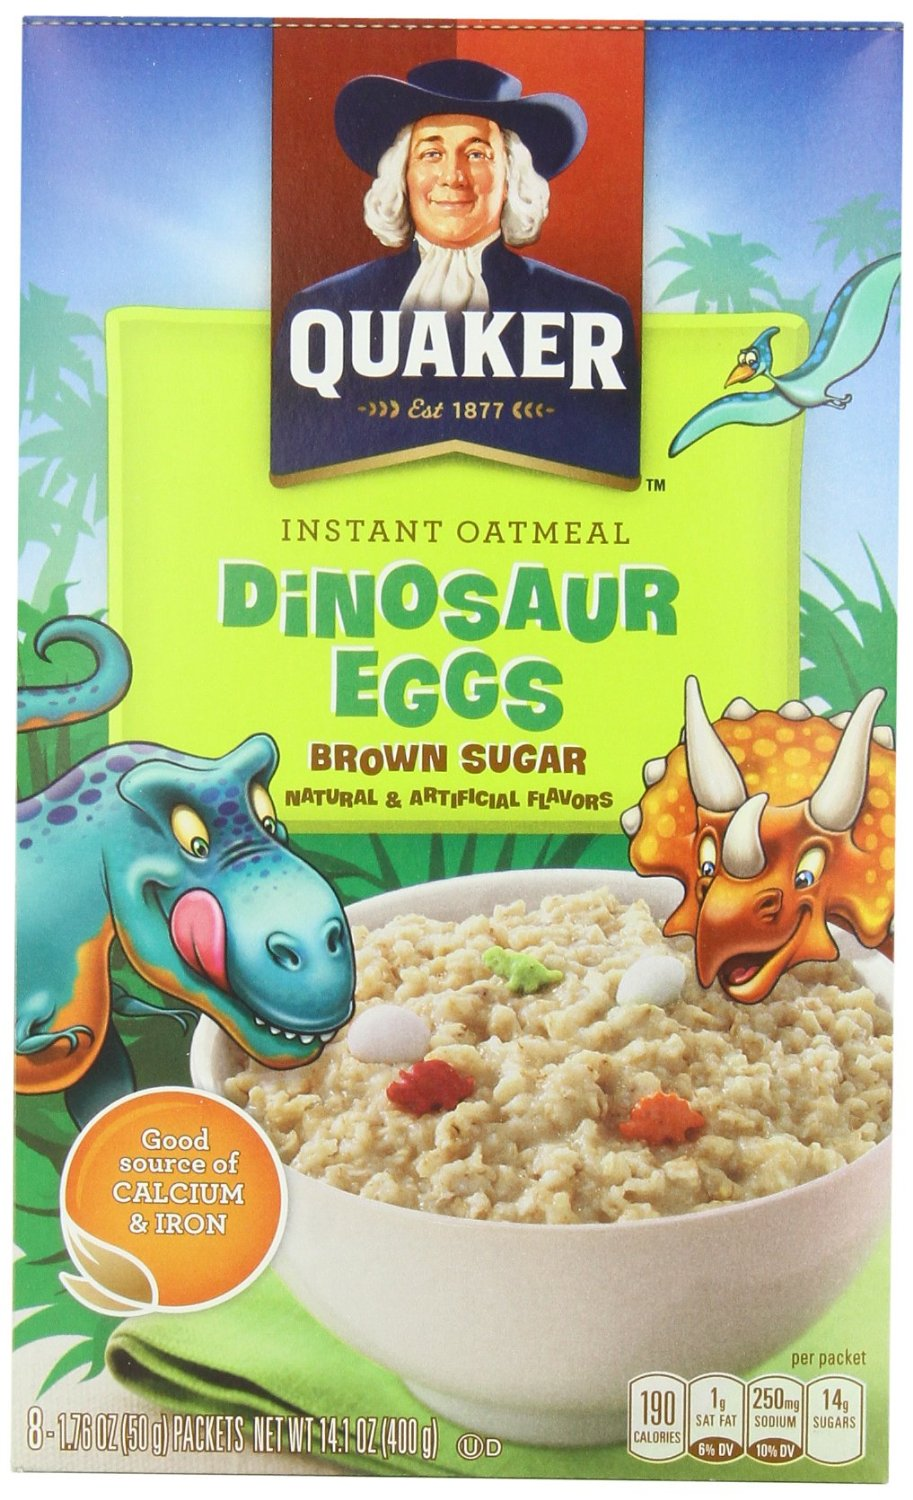 Quaker Instant Oatmeal Dinosaur Eggs, Brown Sugar Cereal, 8-Count 14.1 oz. Boxes (Pack of 4)